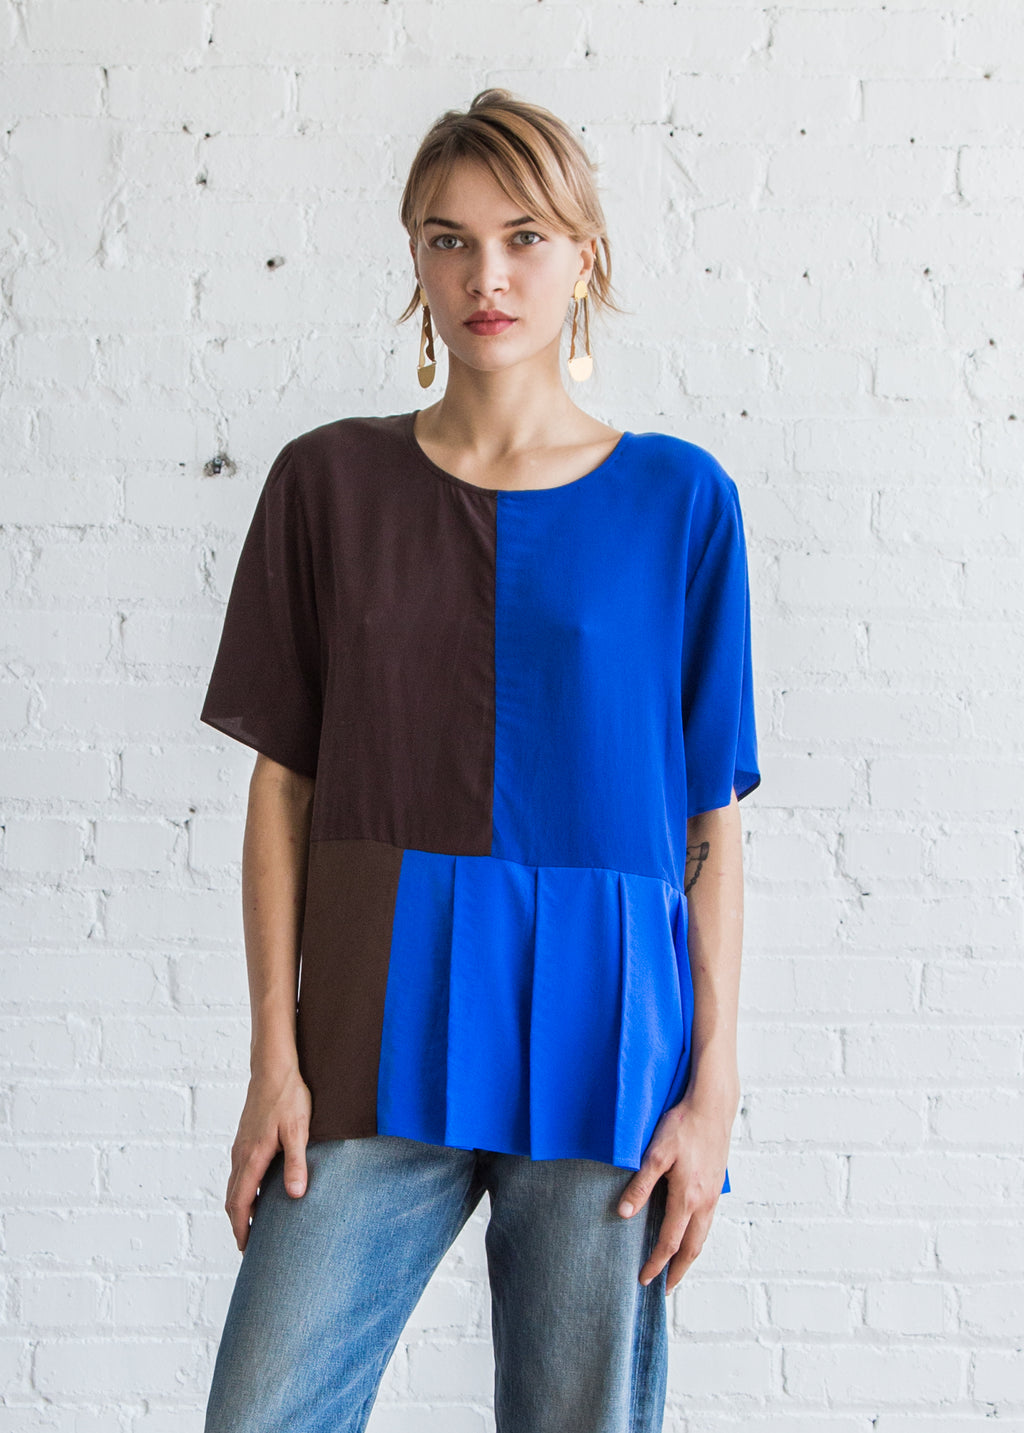 Correll Correll Topa Top Brown/Blue